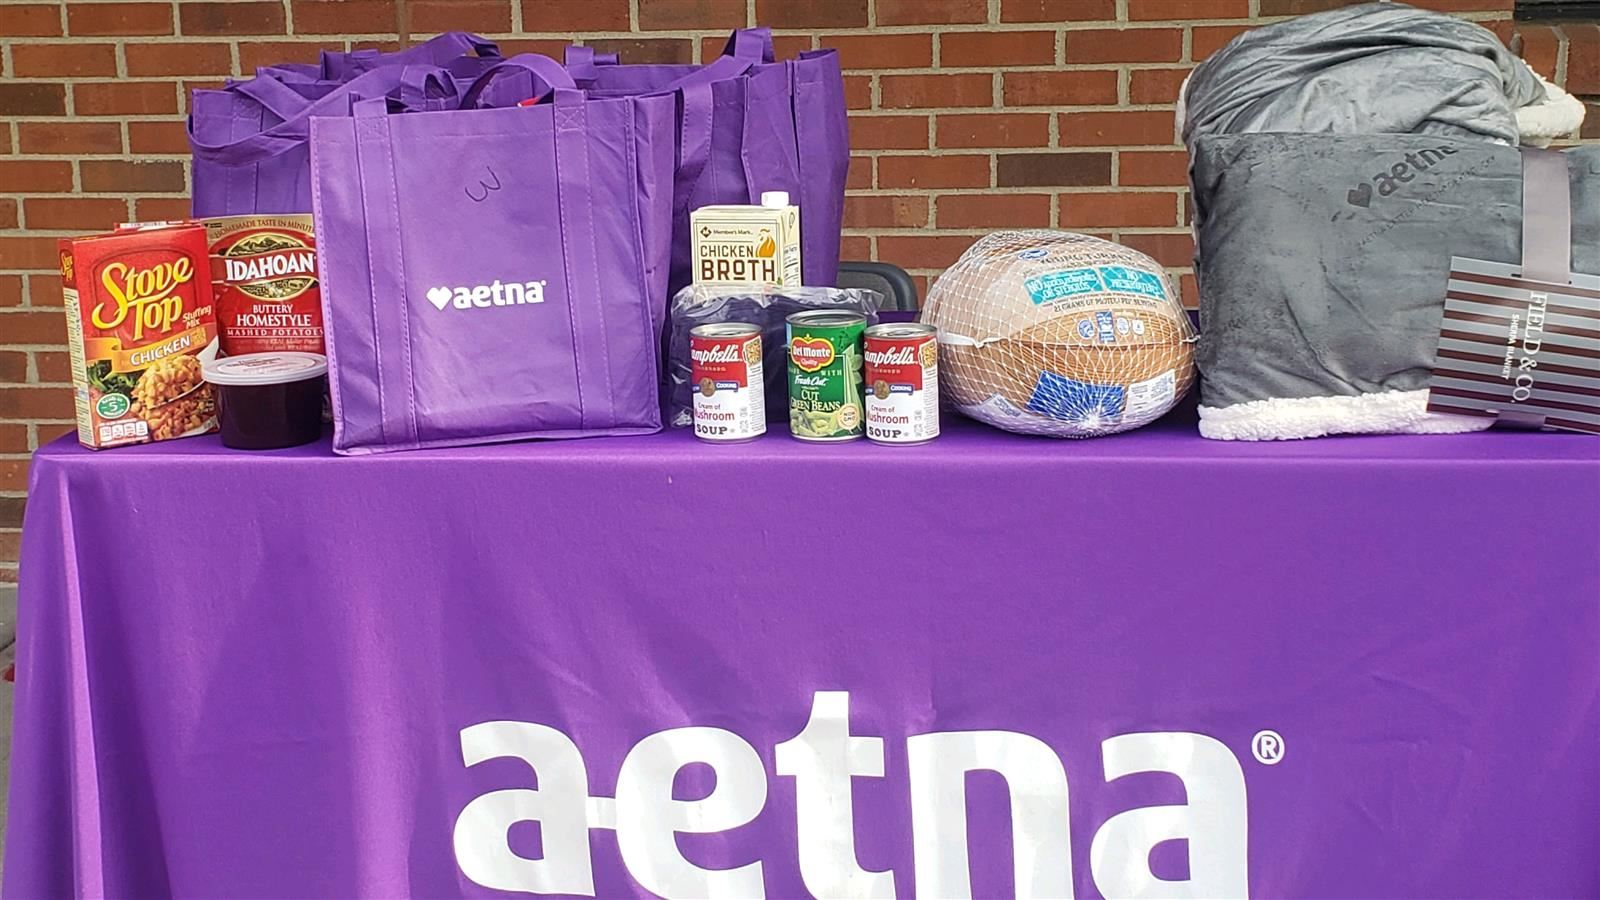 Thank You Aetna Insurance Company and God's Pantry Food Bank